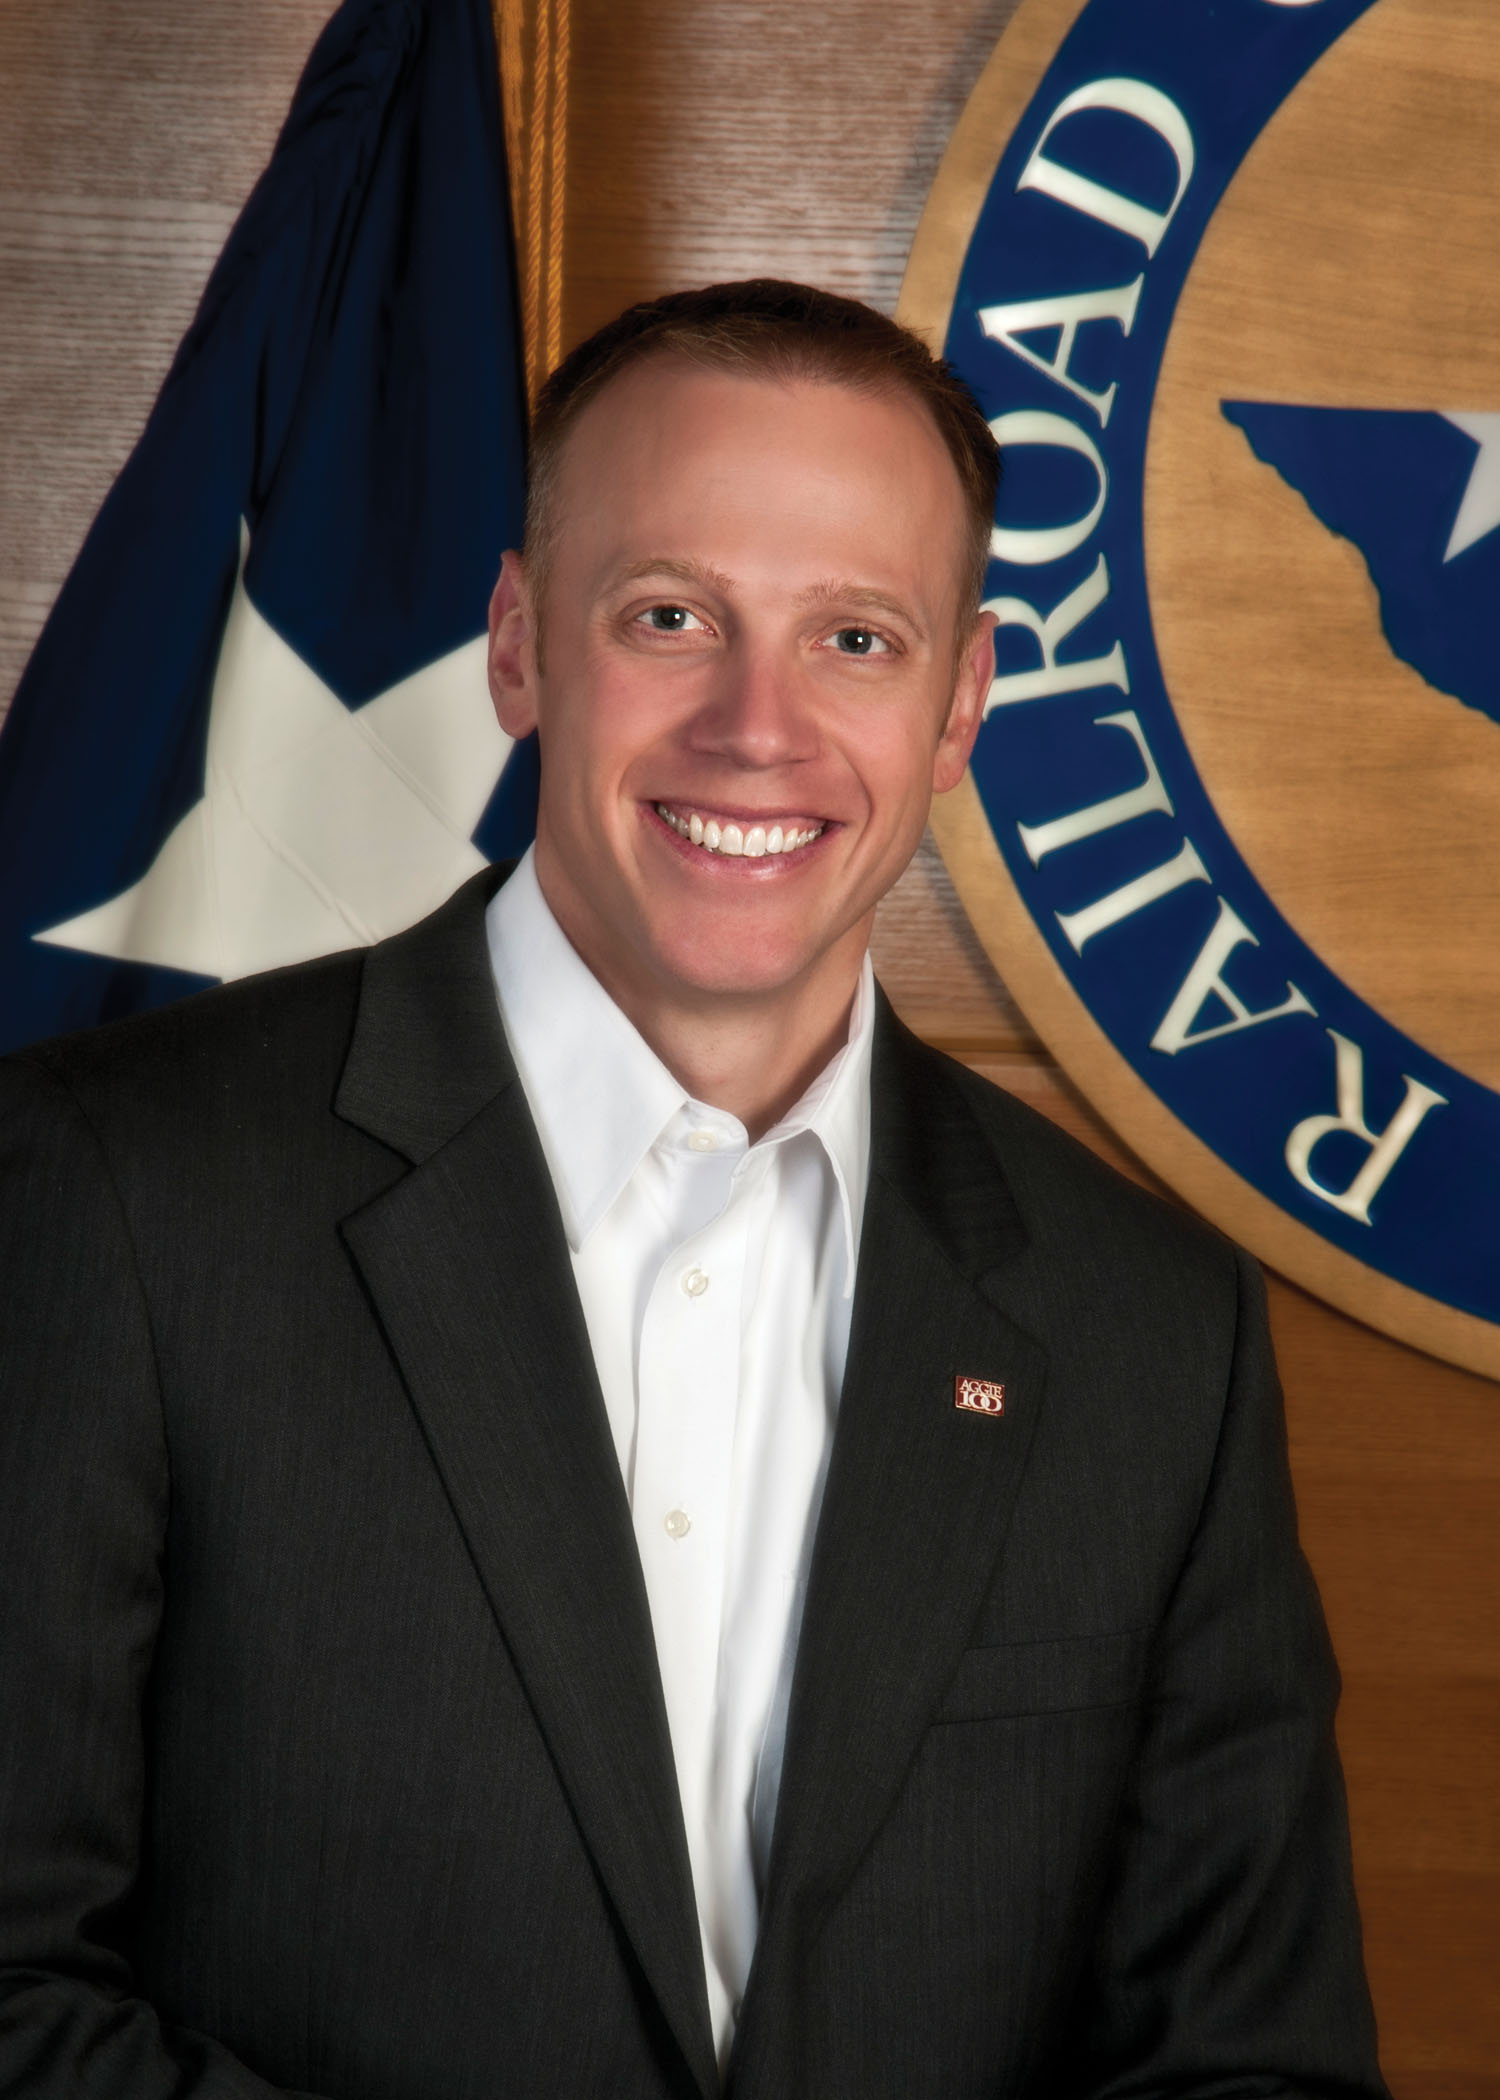 Texas Railroad Commissioner Ryan Sitton